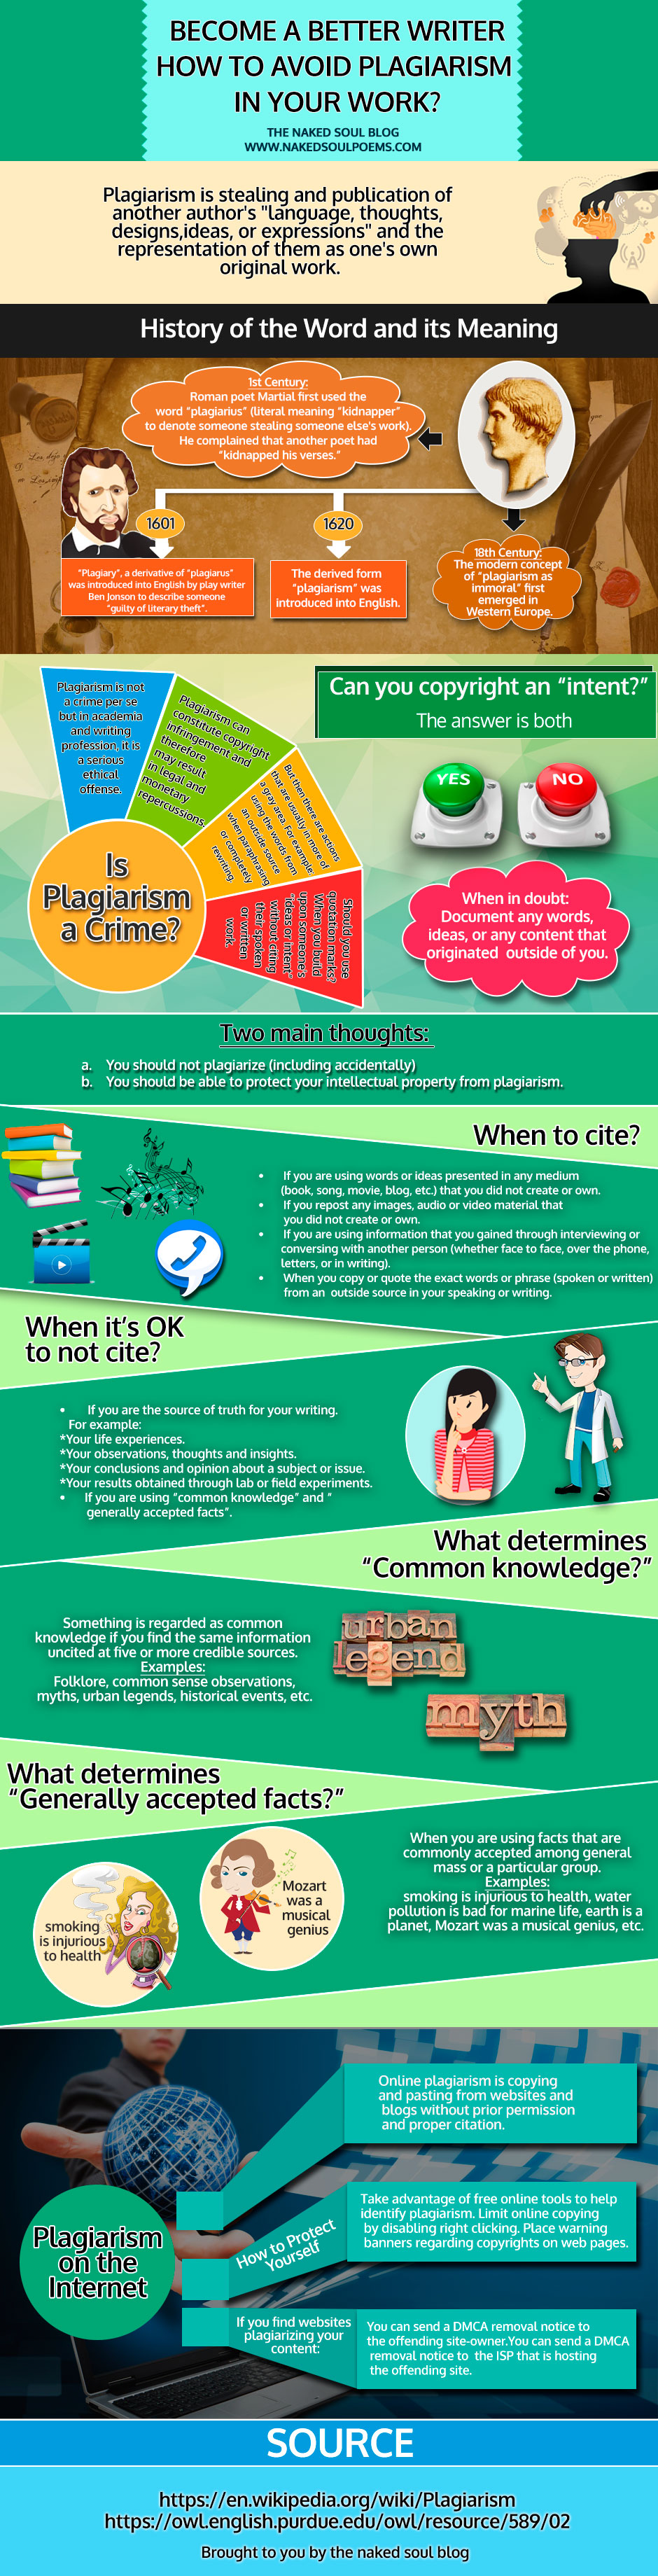 Plagiarism Infographic | How to Combat, Avoid and Report Plagiarism